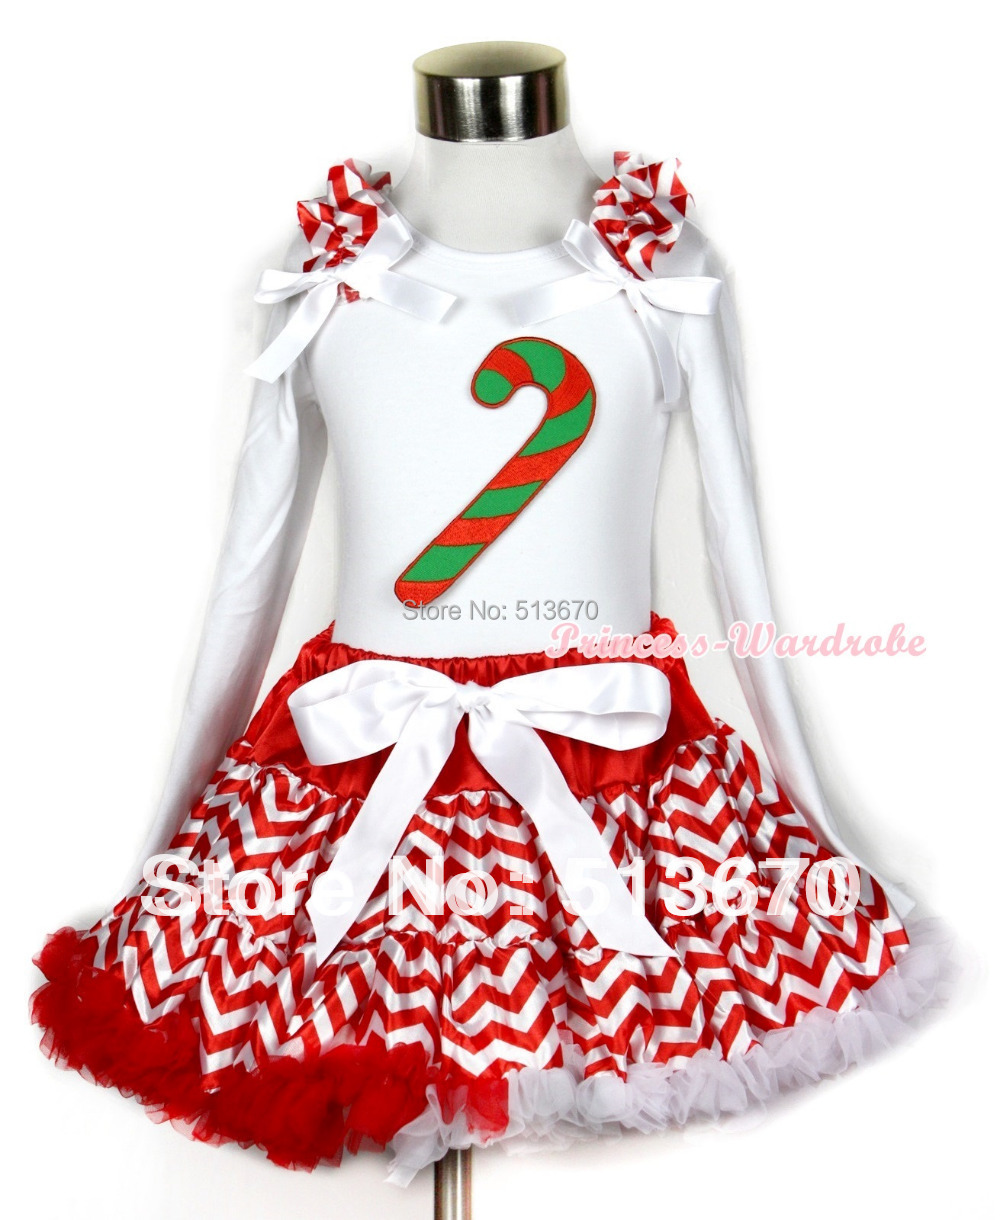 Xmas Red White Wave Pettiskirt with Christmas Stick Print White Long Sleeve Top with Red White Wave Ruffles White Bow MAMW263<br>